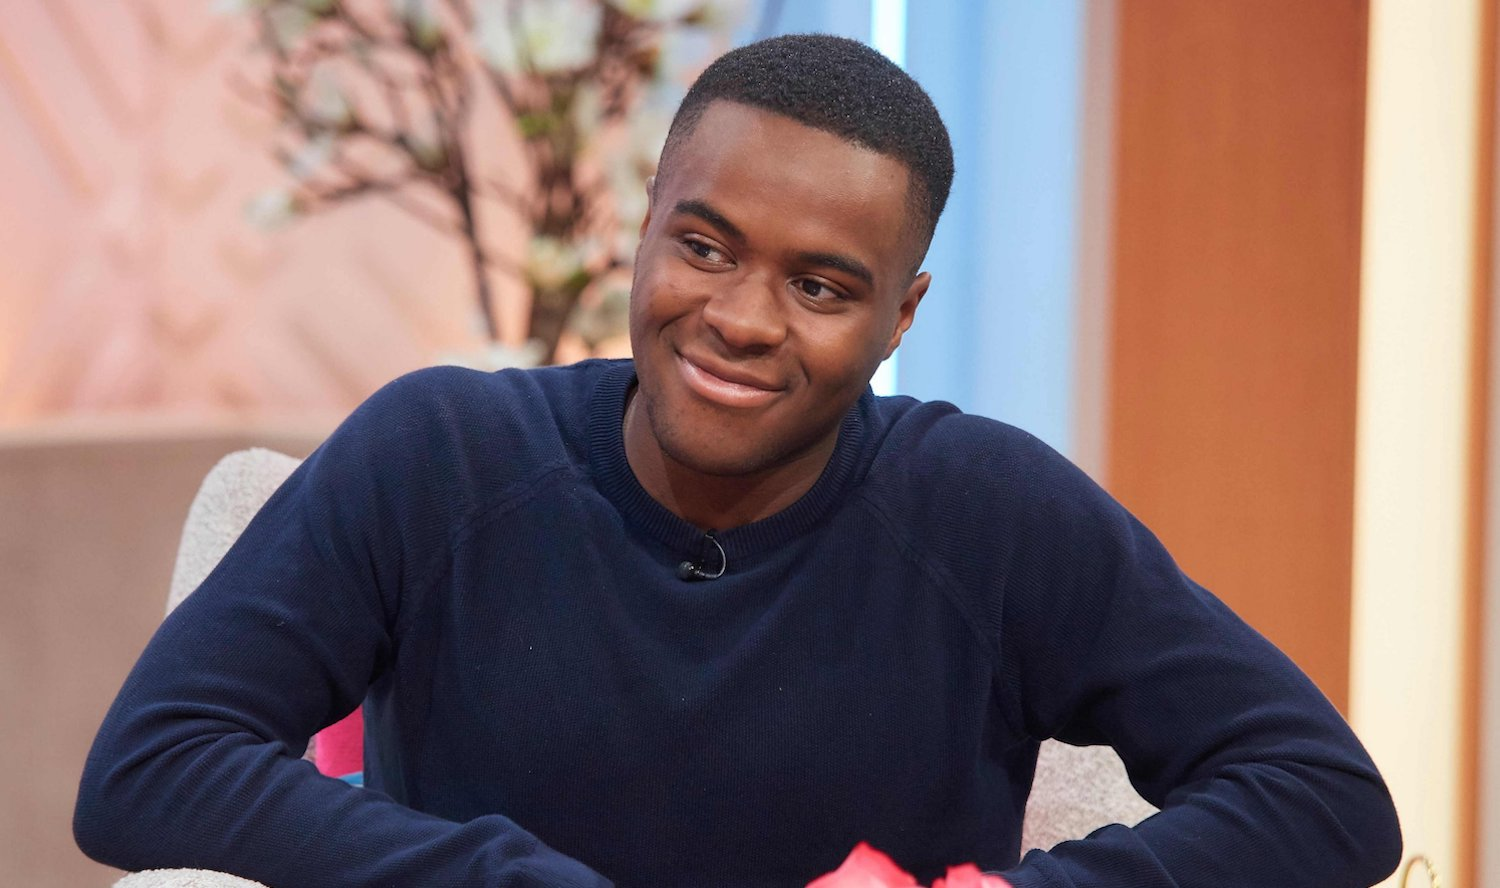 Who is Liam Charles dating? Bake Off star makes public apology to girlfriend Alexis